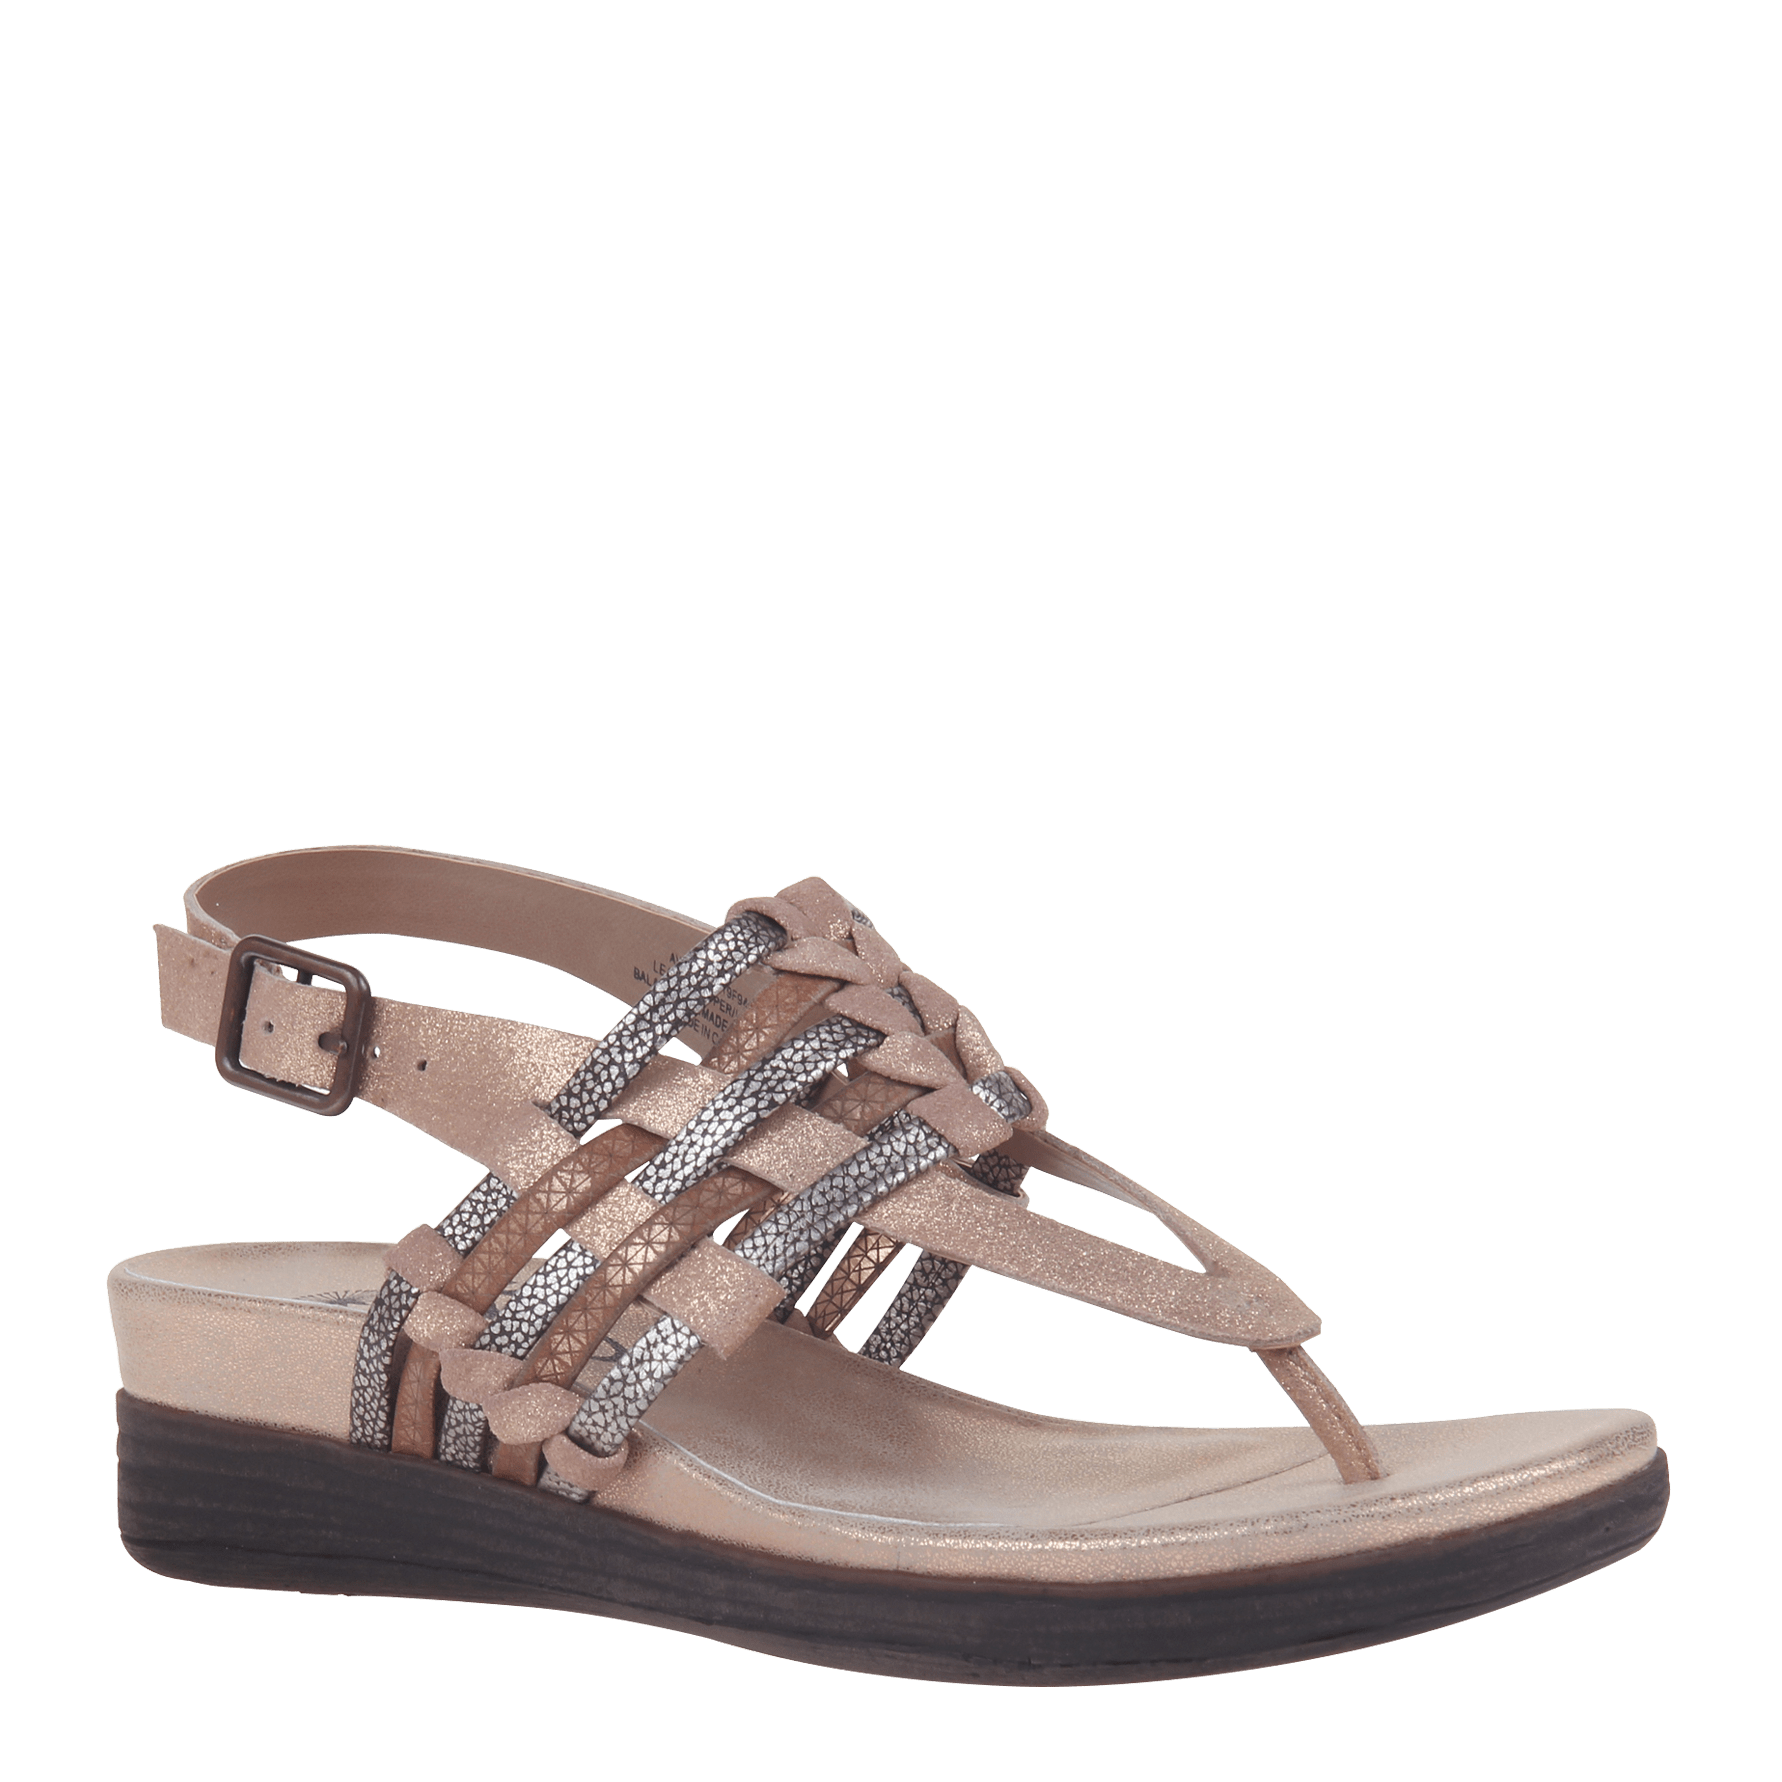 Womens sandal Aviate in Copper